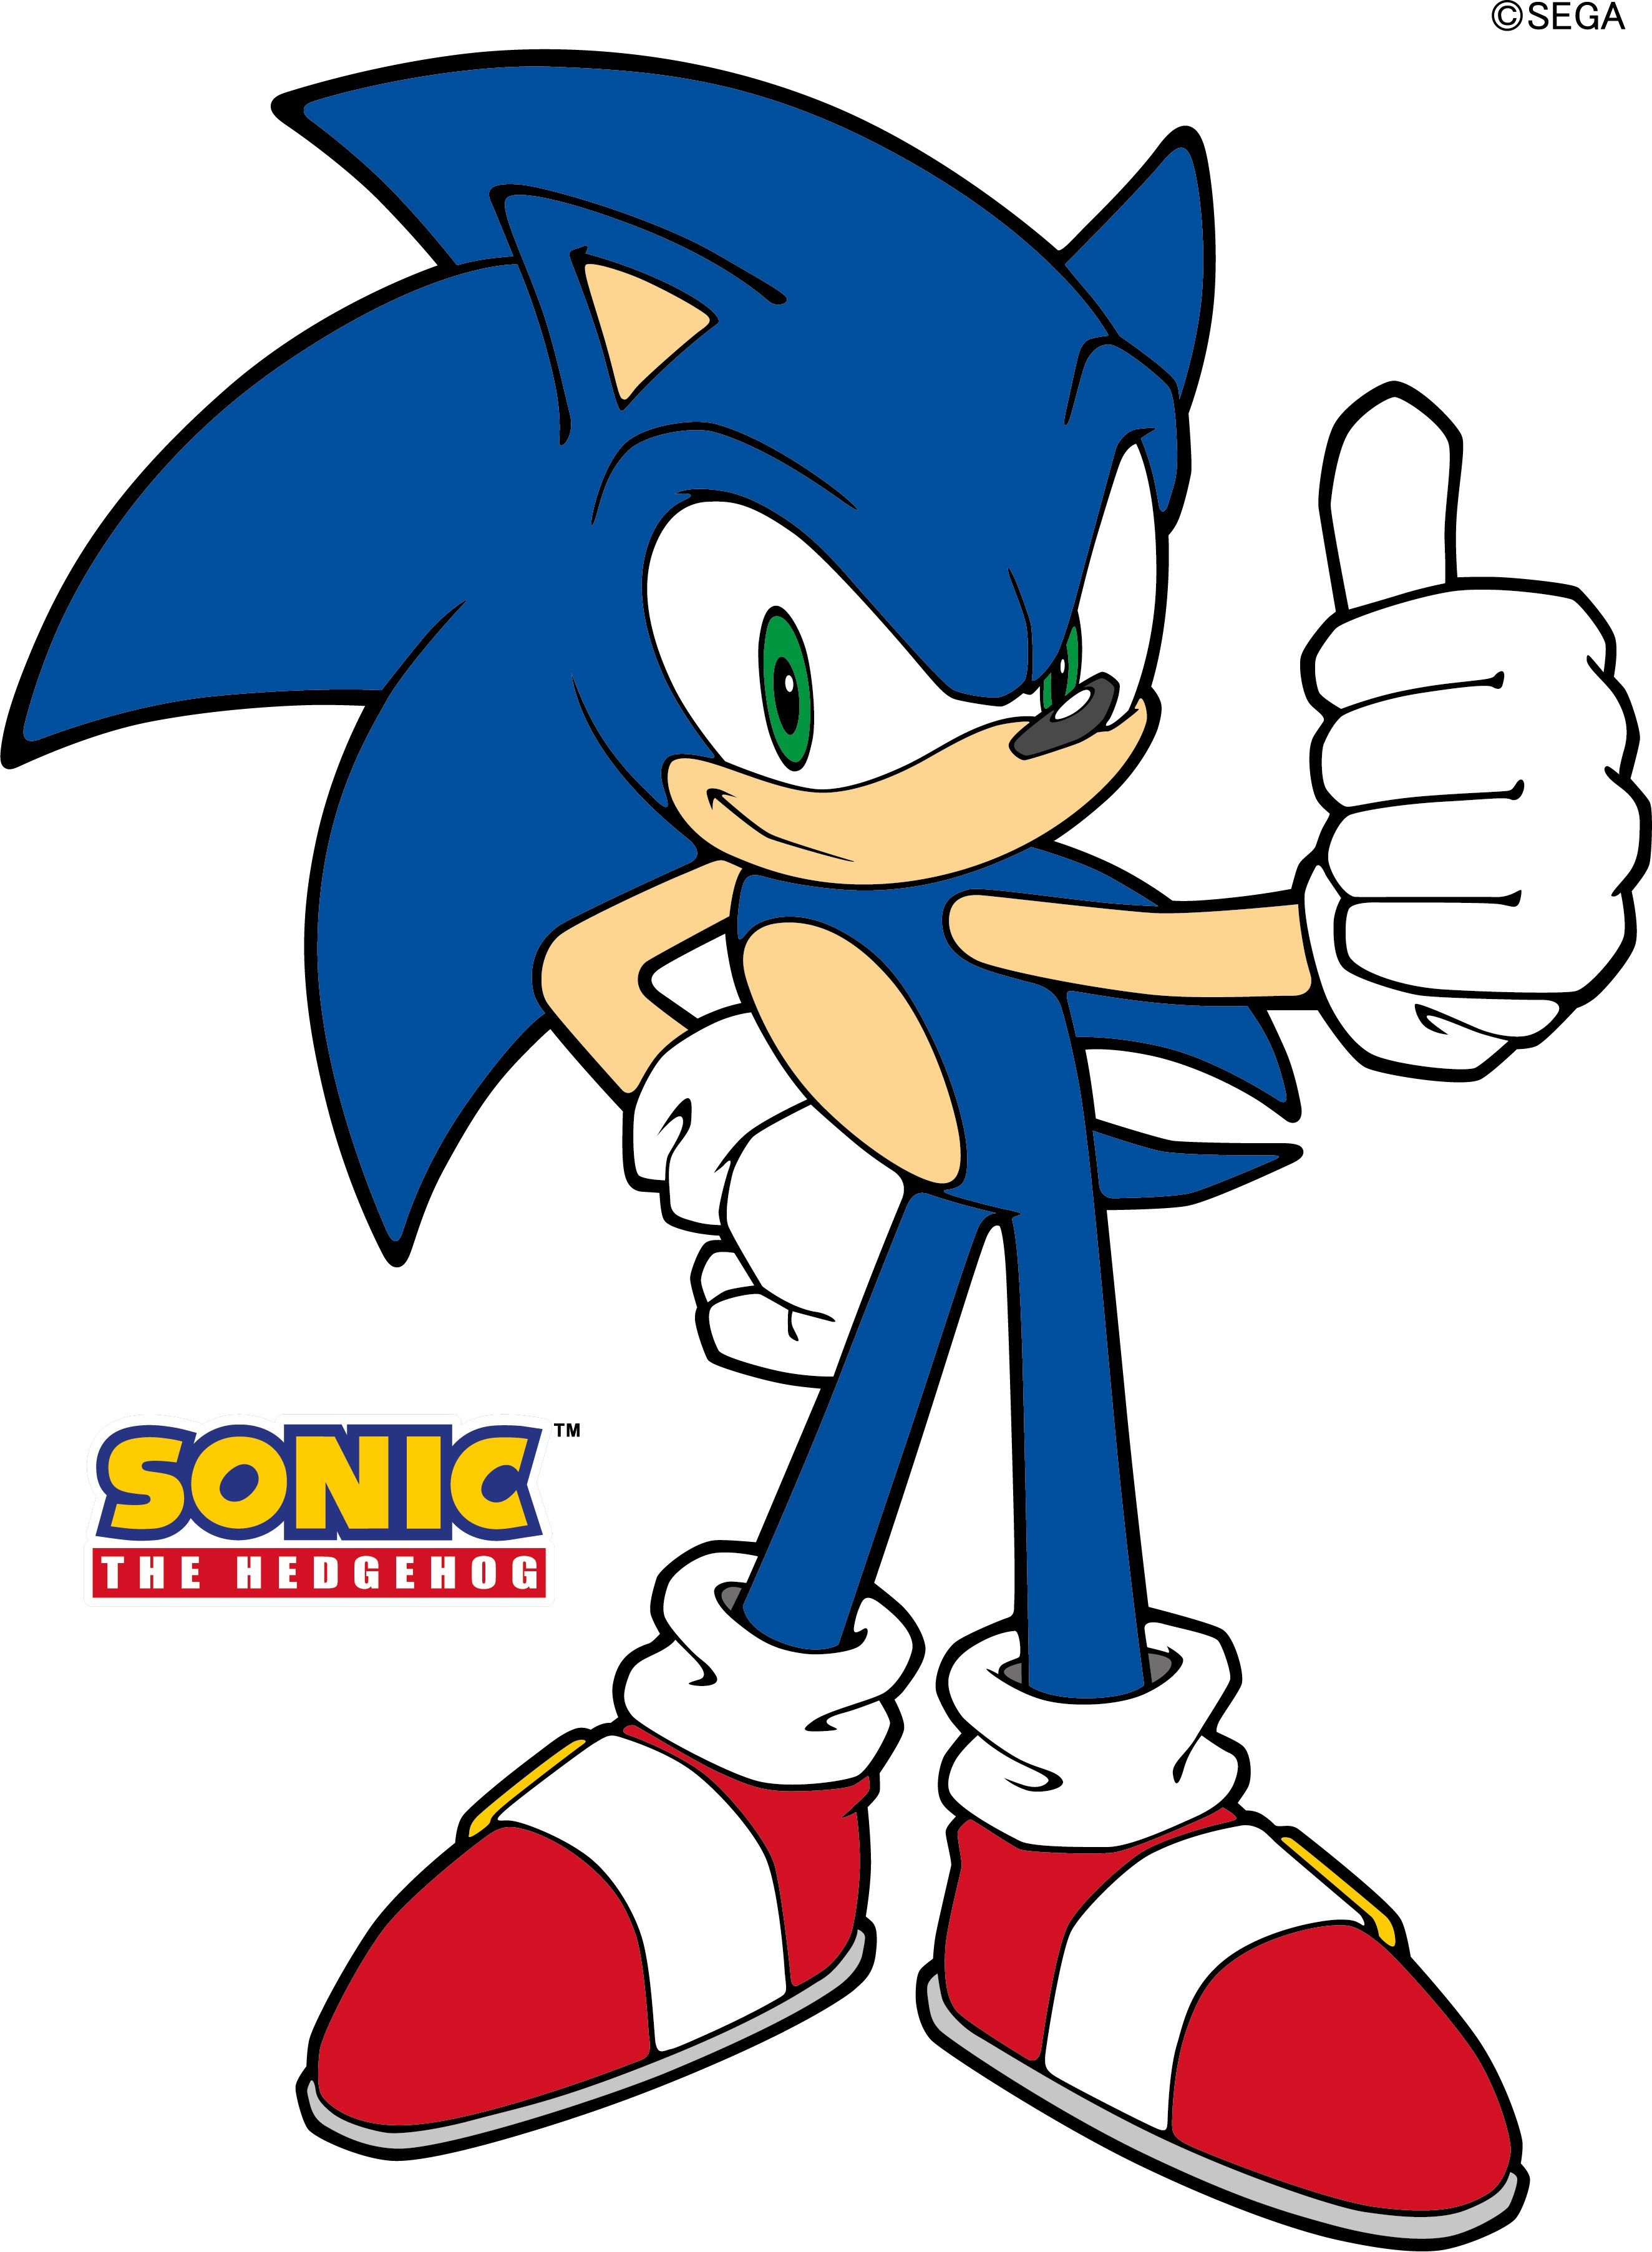 Pin By Devon White On Sonic The Hedgehog Pinterest Sonic The